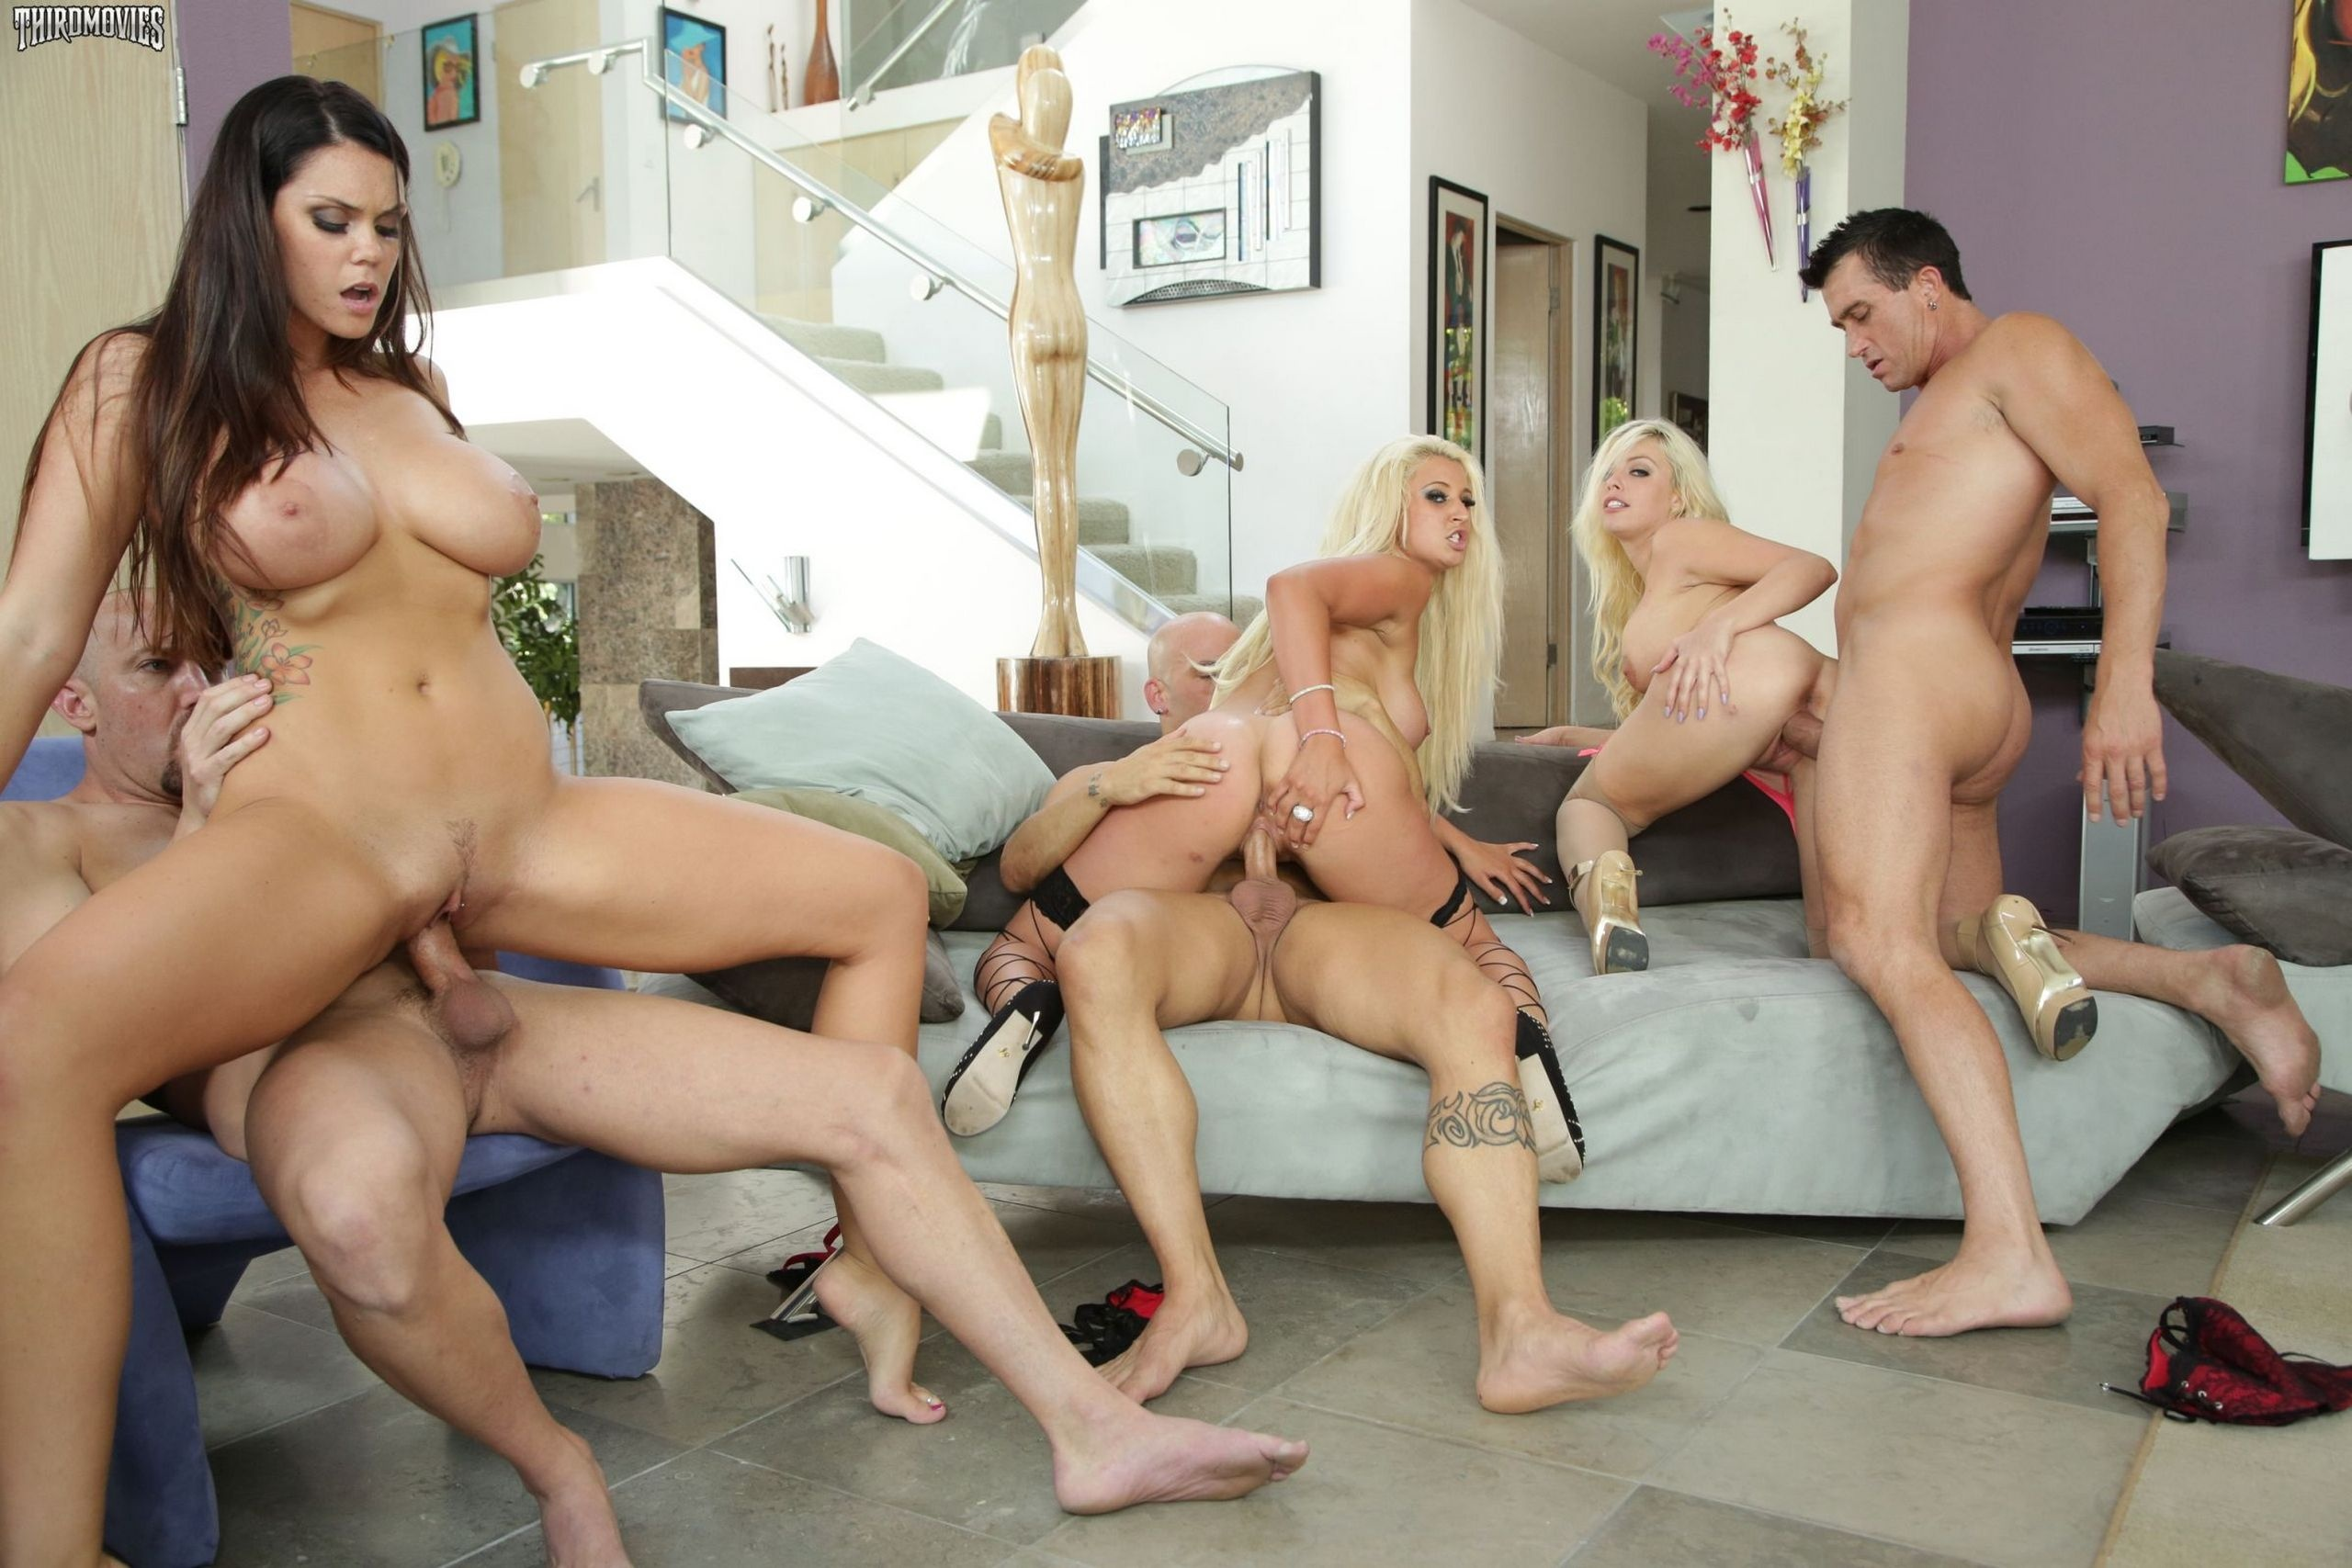 Group of women with big tits getting fucked Fucking Big Tits Group Free